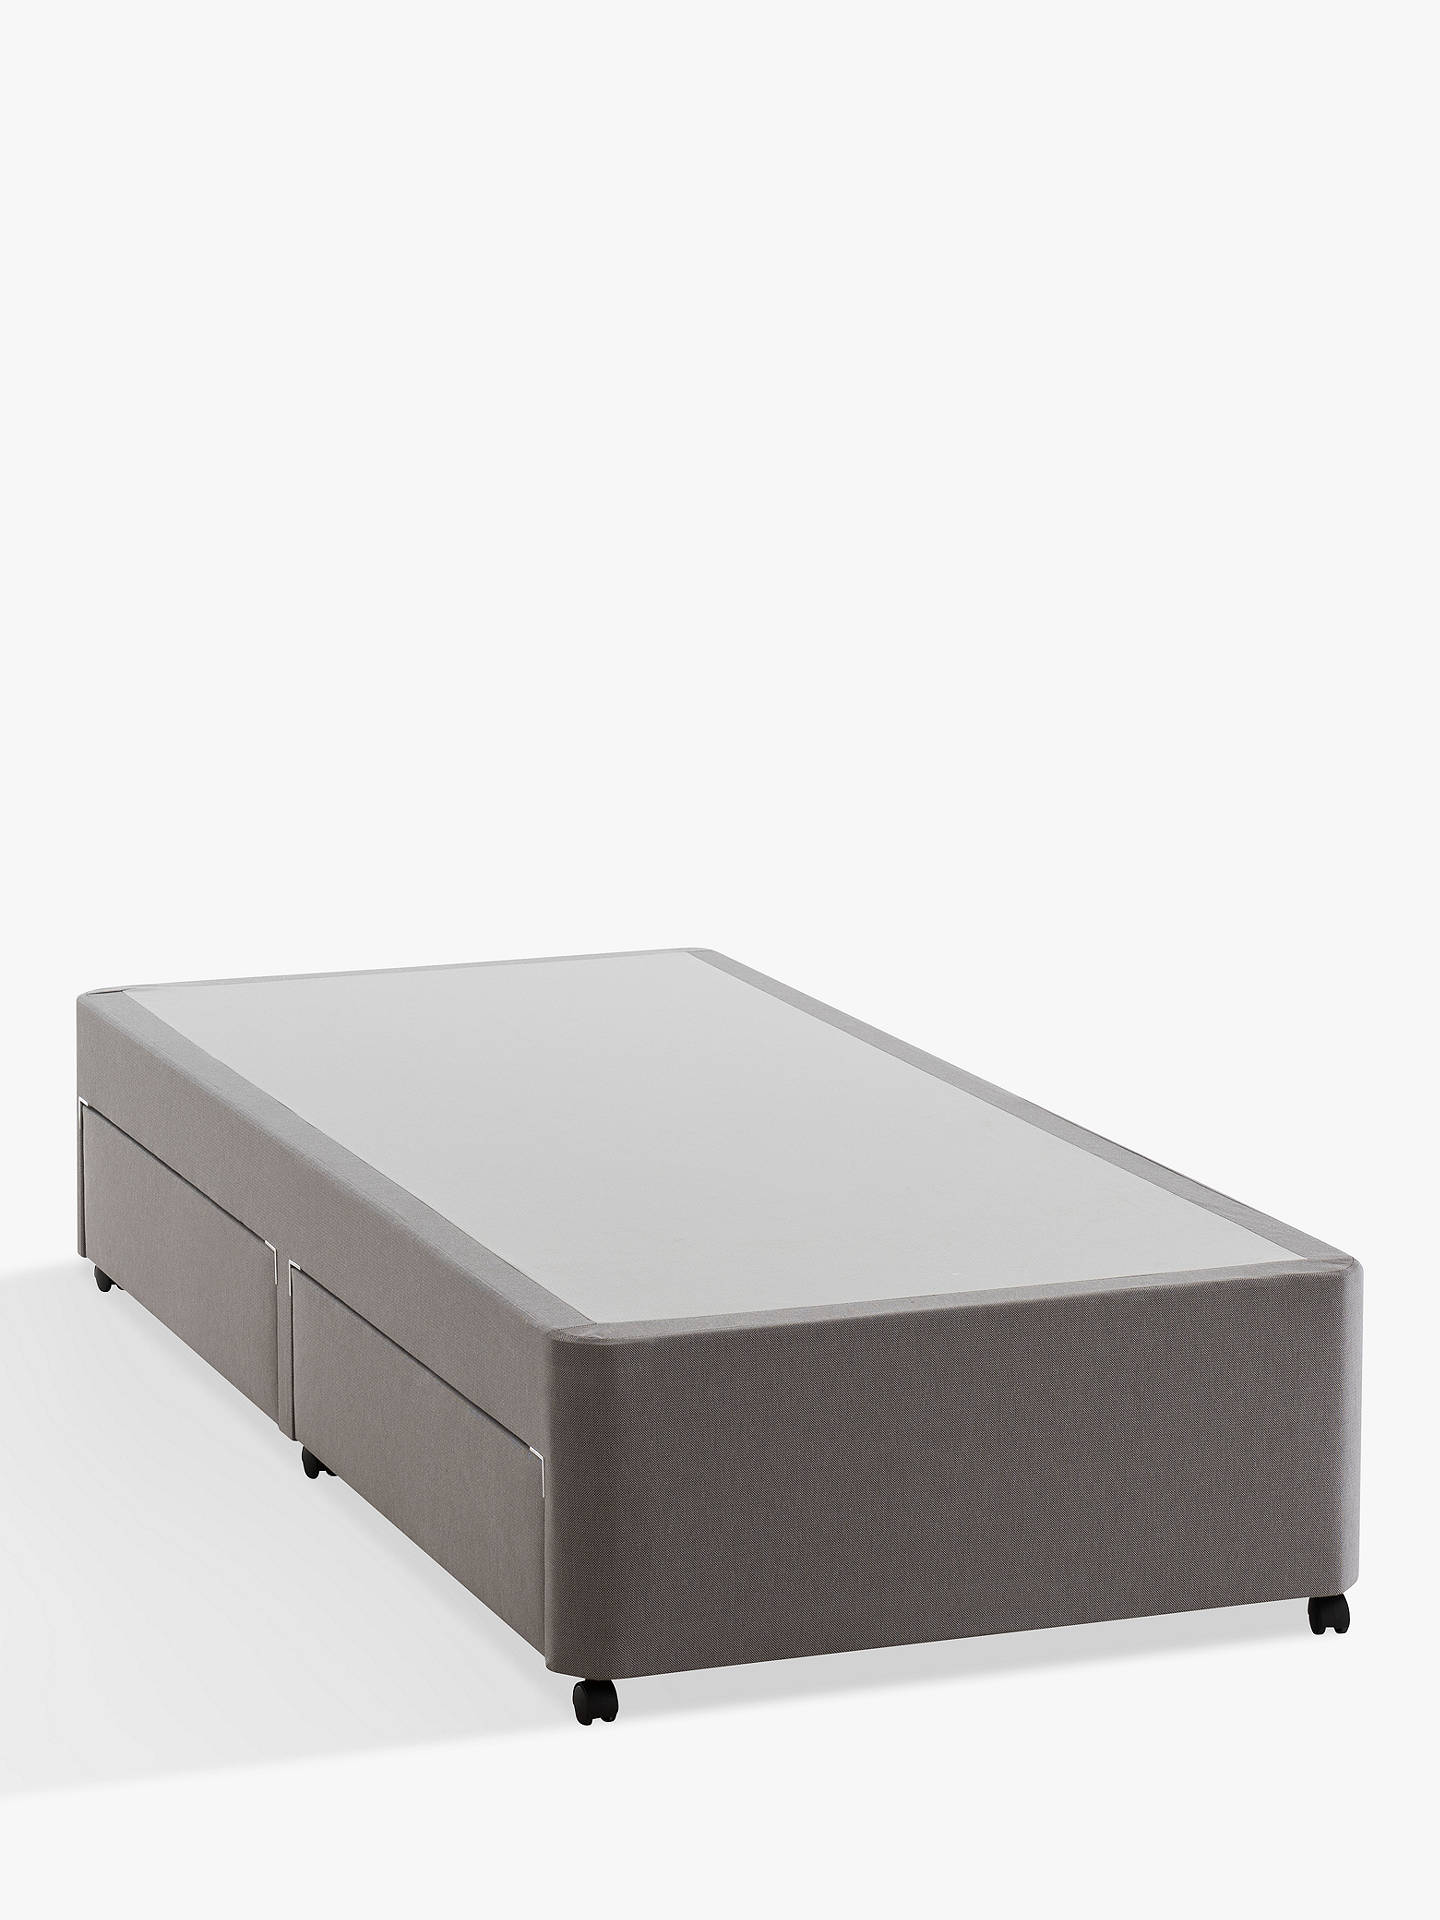 BuySilentnight Sprung Edge 2 Drawer Divan Storage Bed, Single Online at johnlewis.com